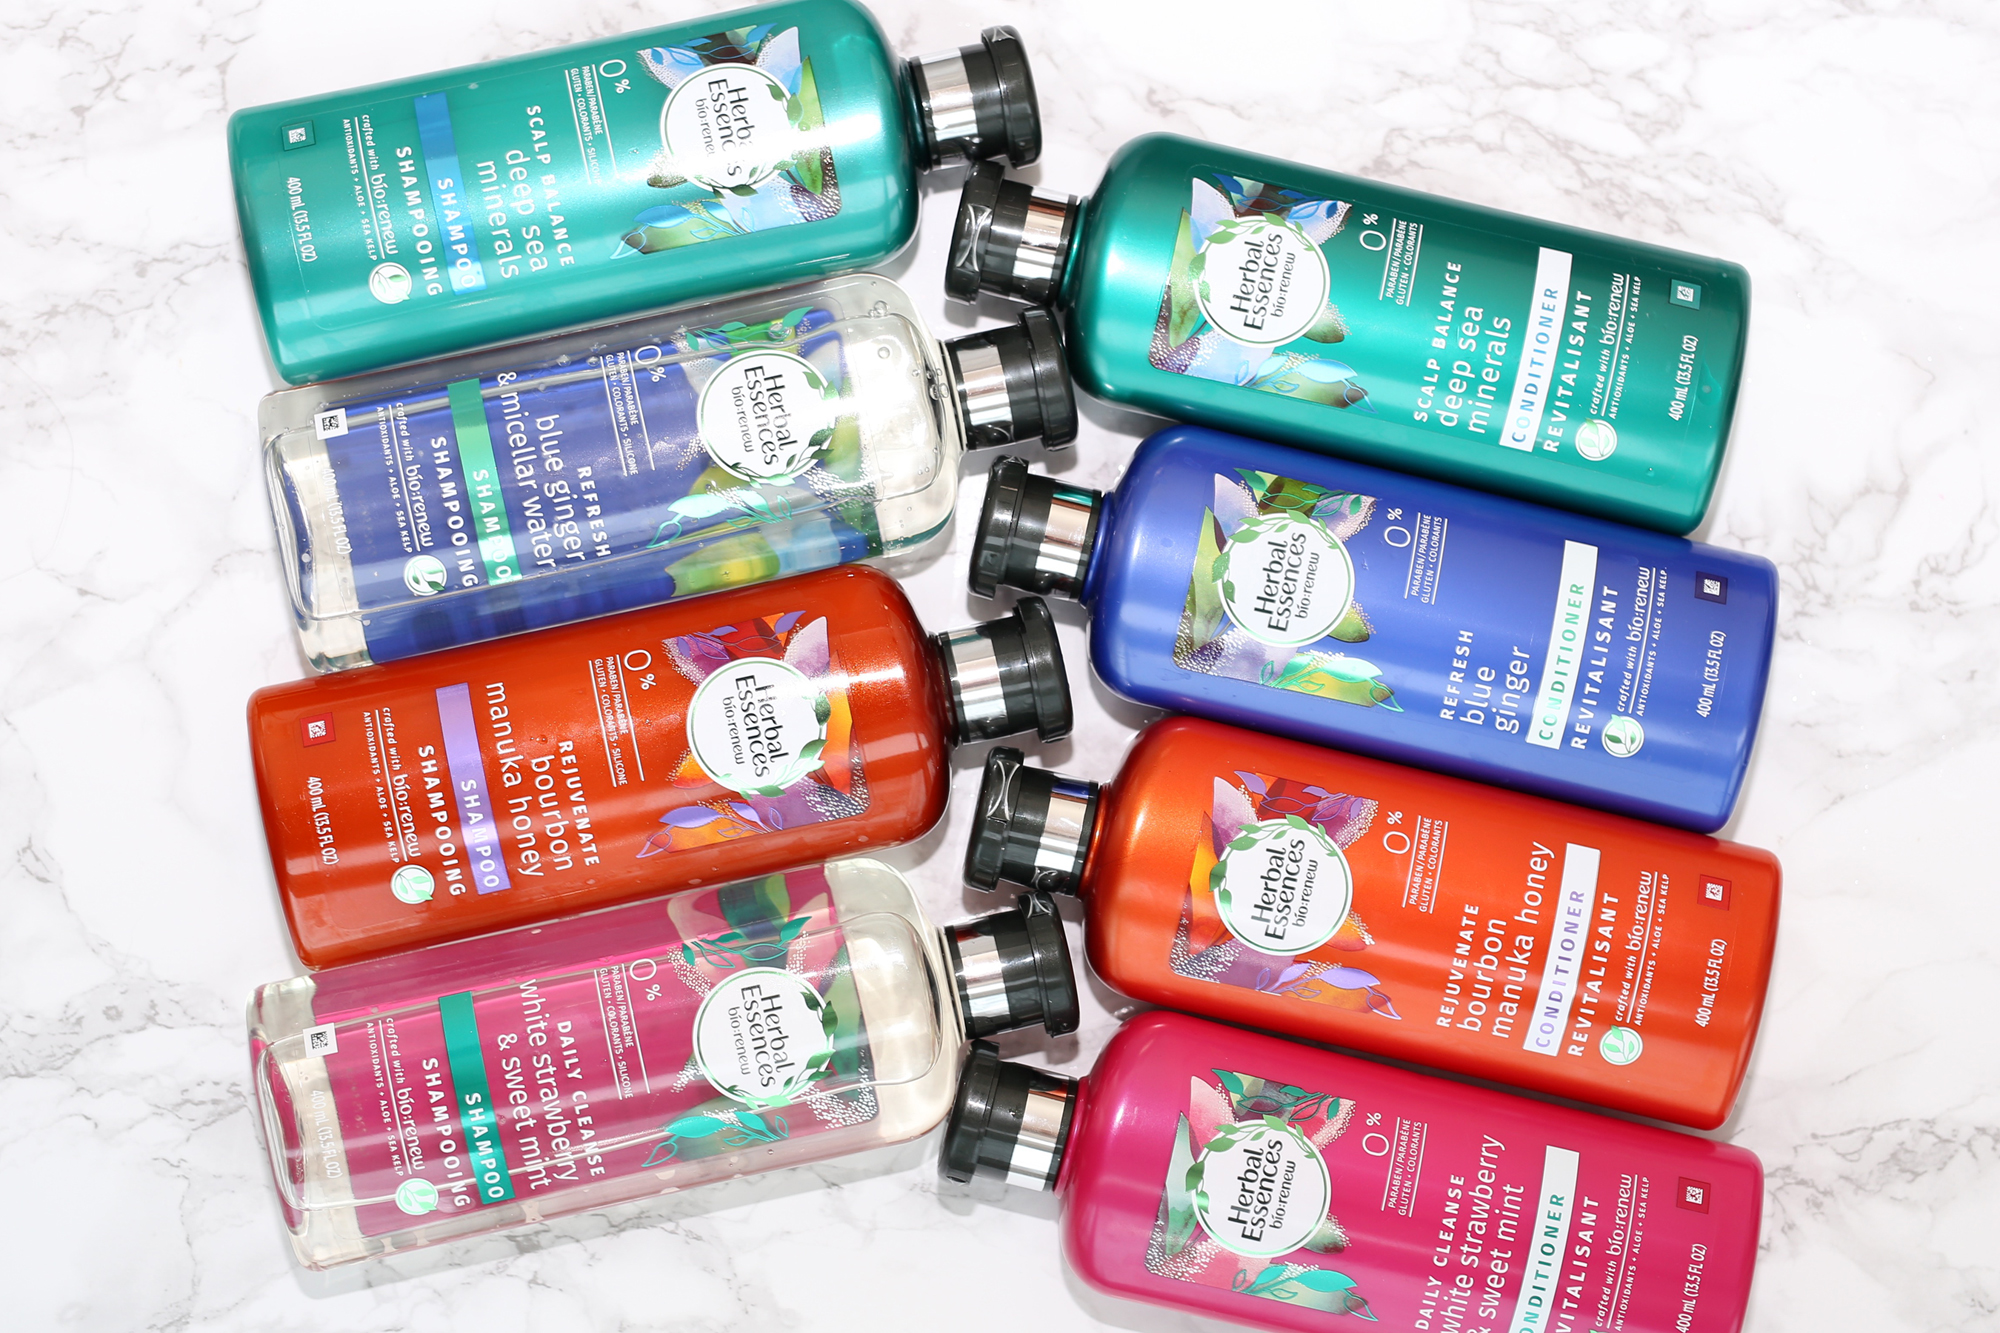 My favourite drug store shampoo, Herbal Essences bio:renew, welcomes four new shampoos and conditioners to the family: Deep Sea Minerals, Blue Ginger, Bourbon Manuka Honey, and White Strawberry & Sweet Mint! The entire range smells incredible and is safe for coloured hair.